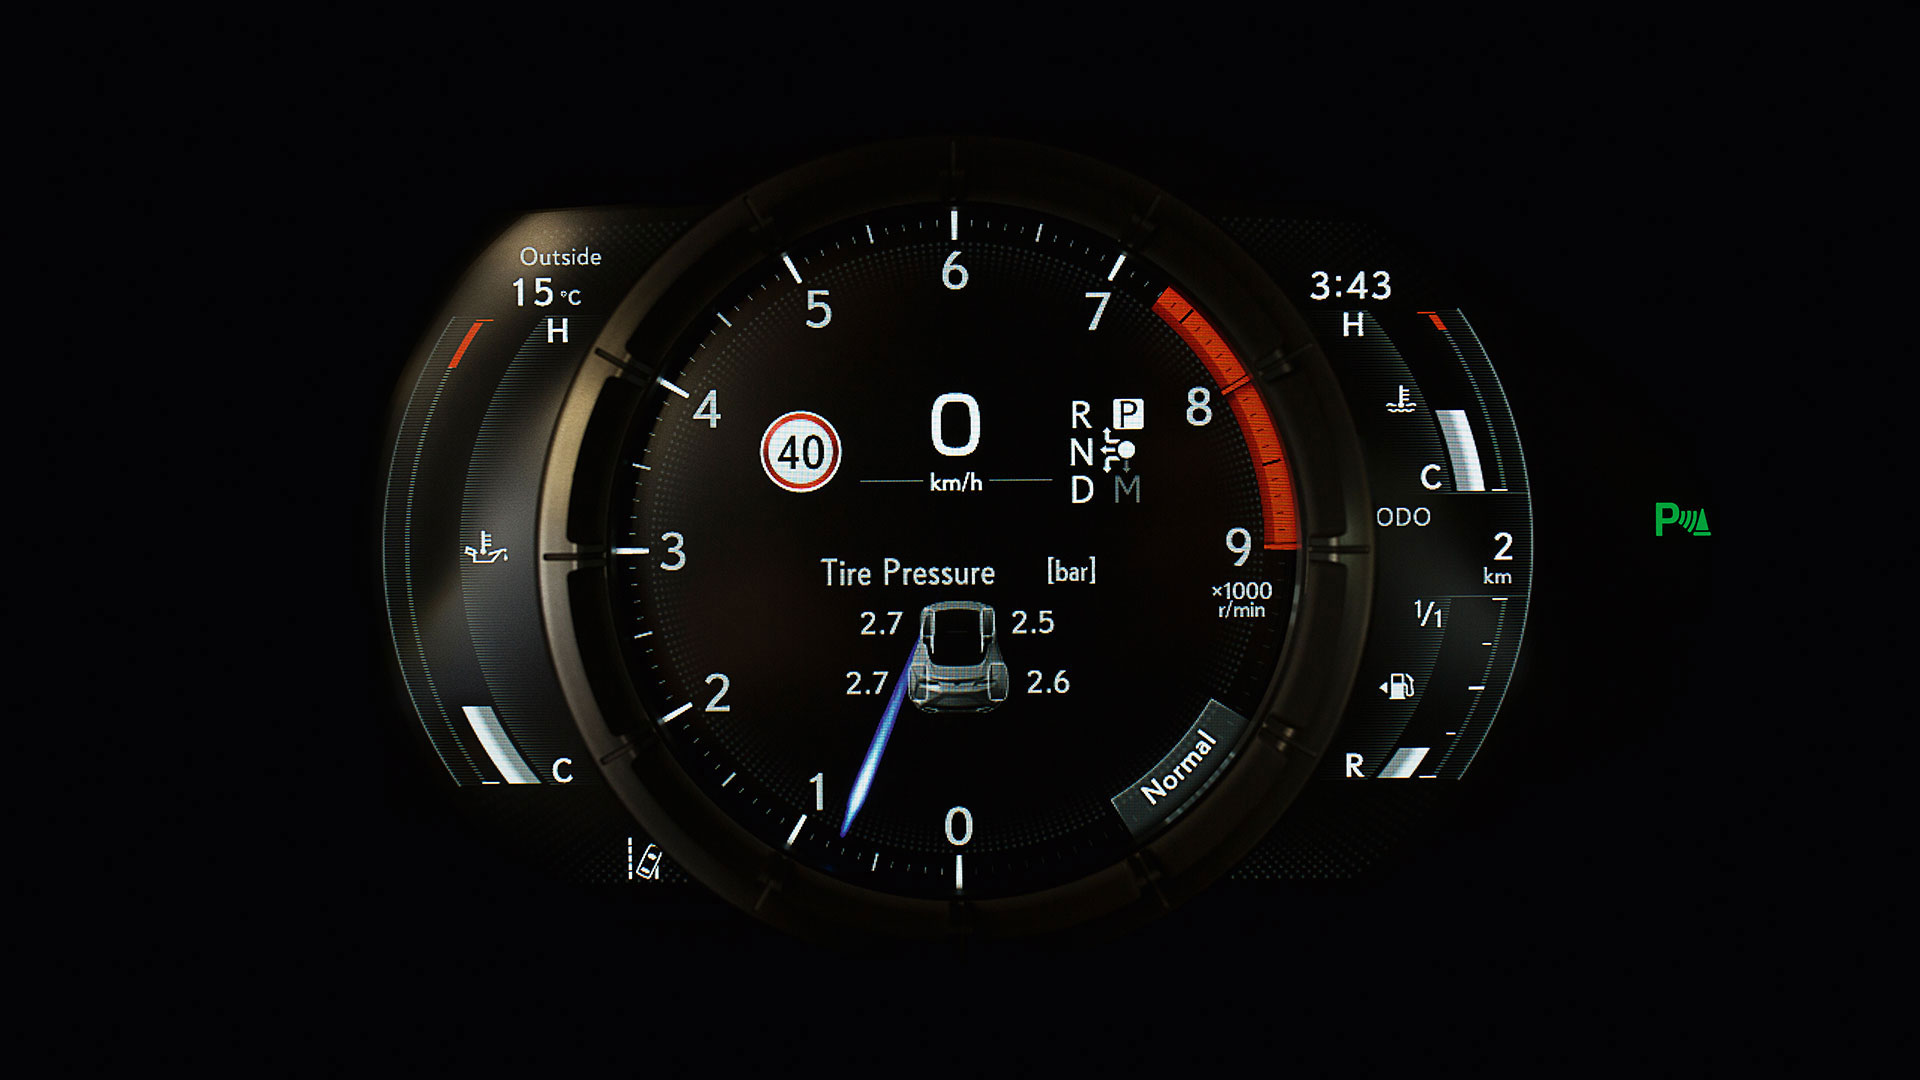 2017 lexus lc 500 features tyre pressure warning system